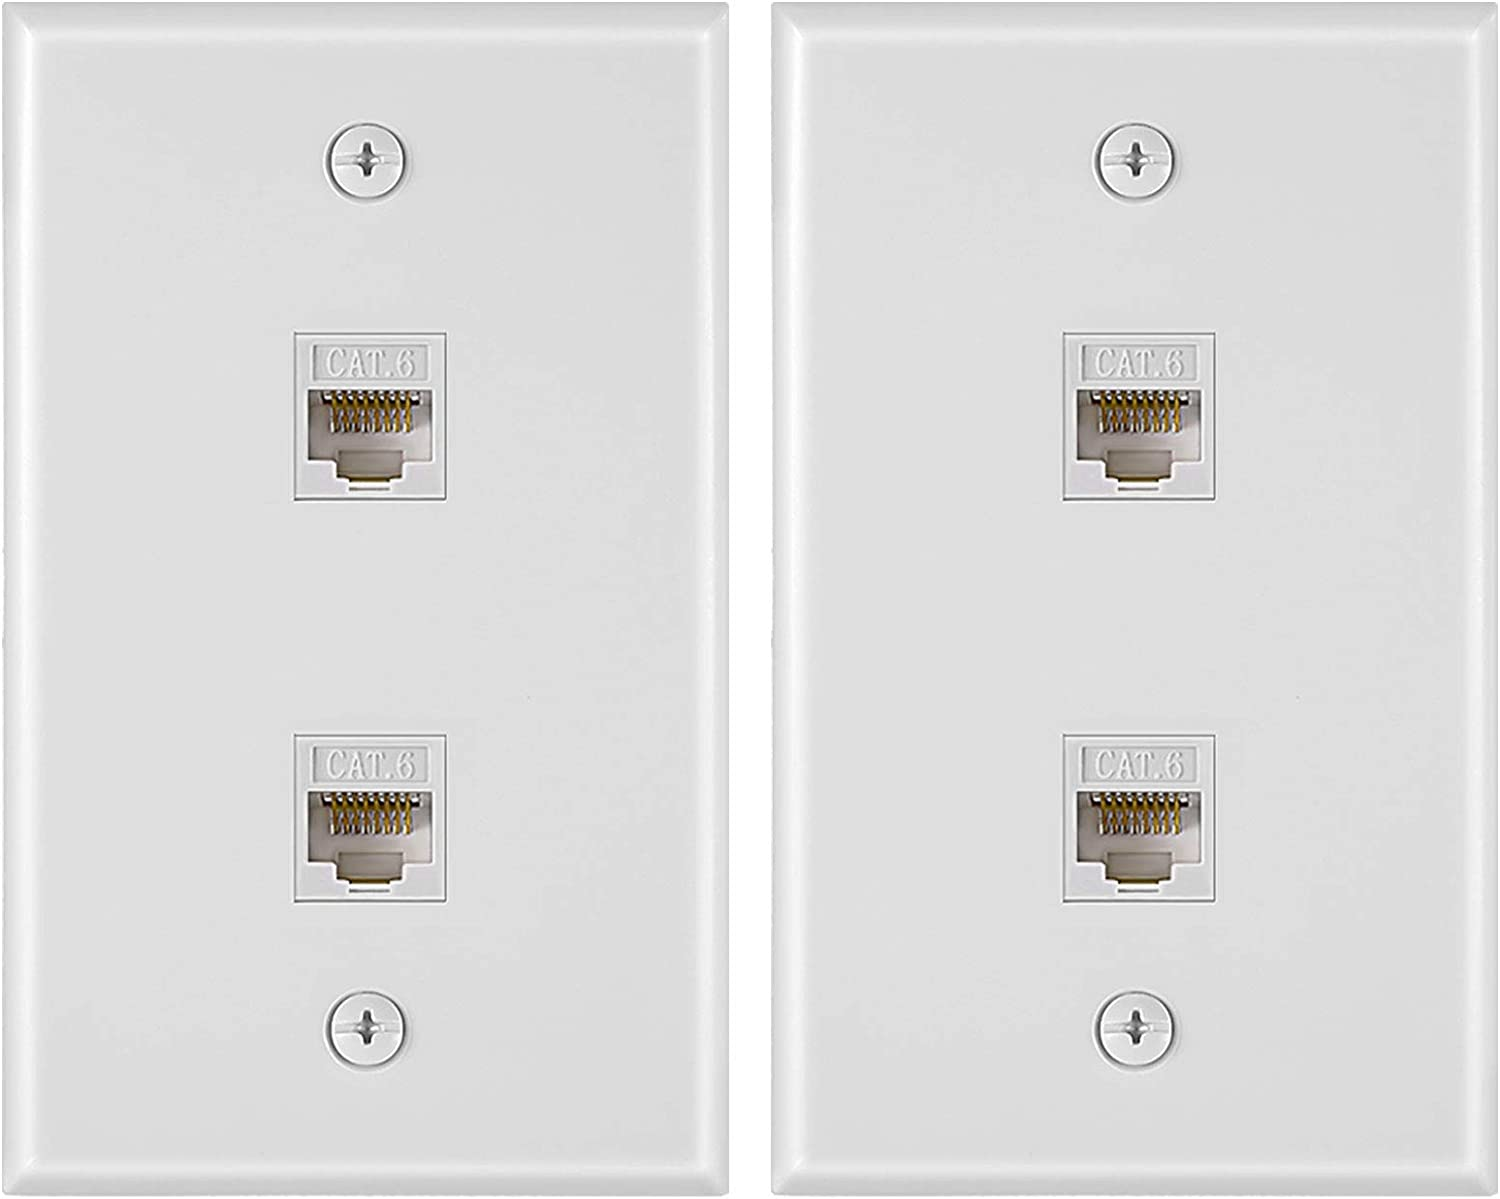 2 Pieces 2 Port Ethernet Wall Plate, Cat6 RJ45 Network Cable Pla